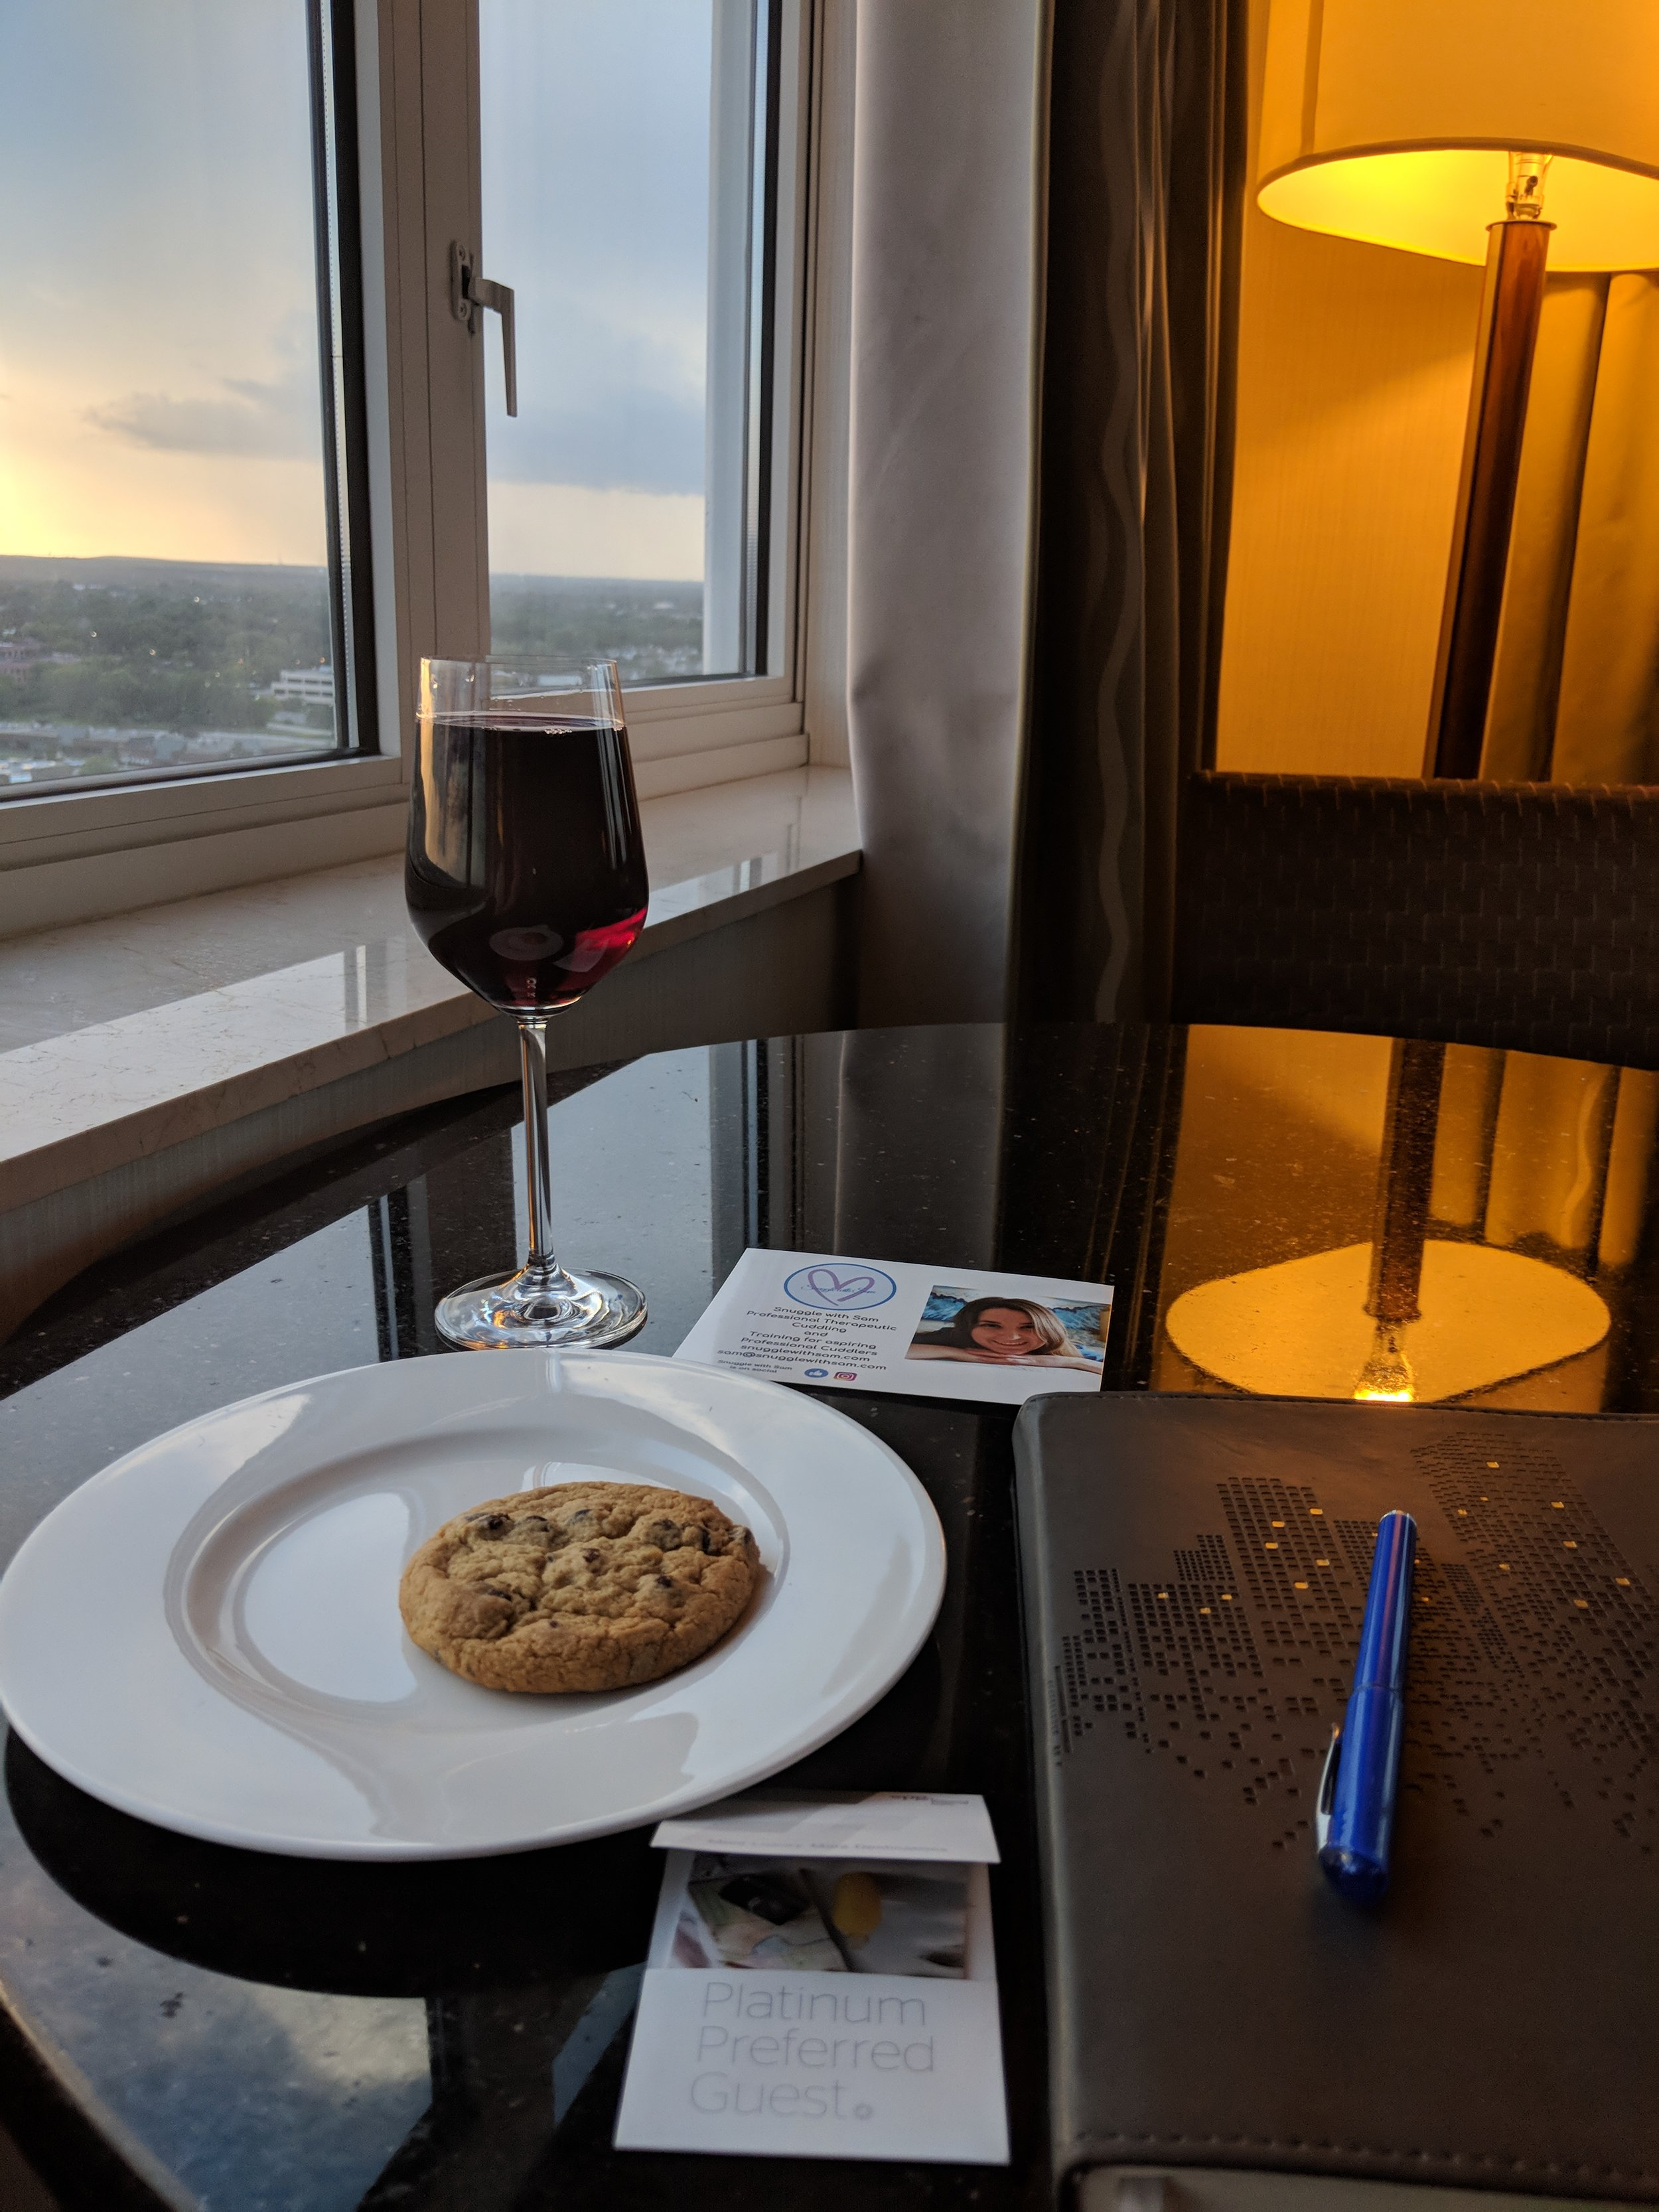 Seriously, I had this every single night I was in the Westin Hotel in Lombard. Look at how full that glass of wine is!